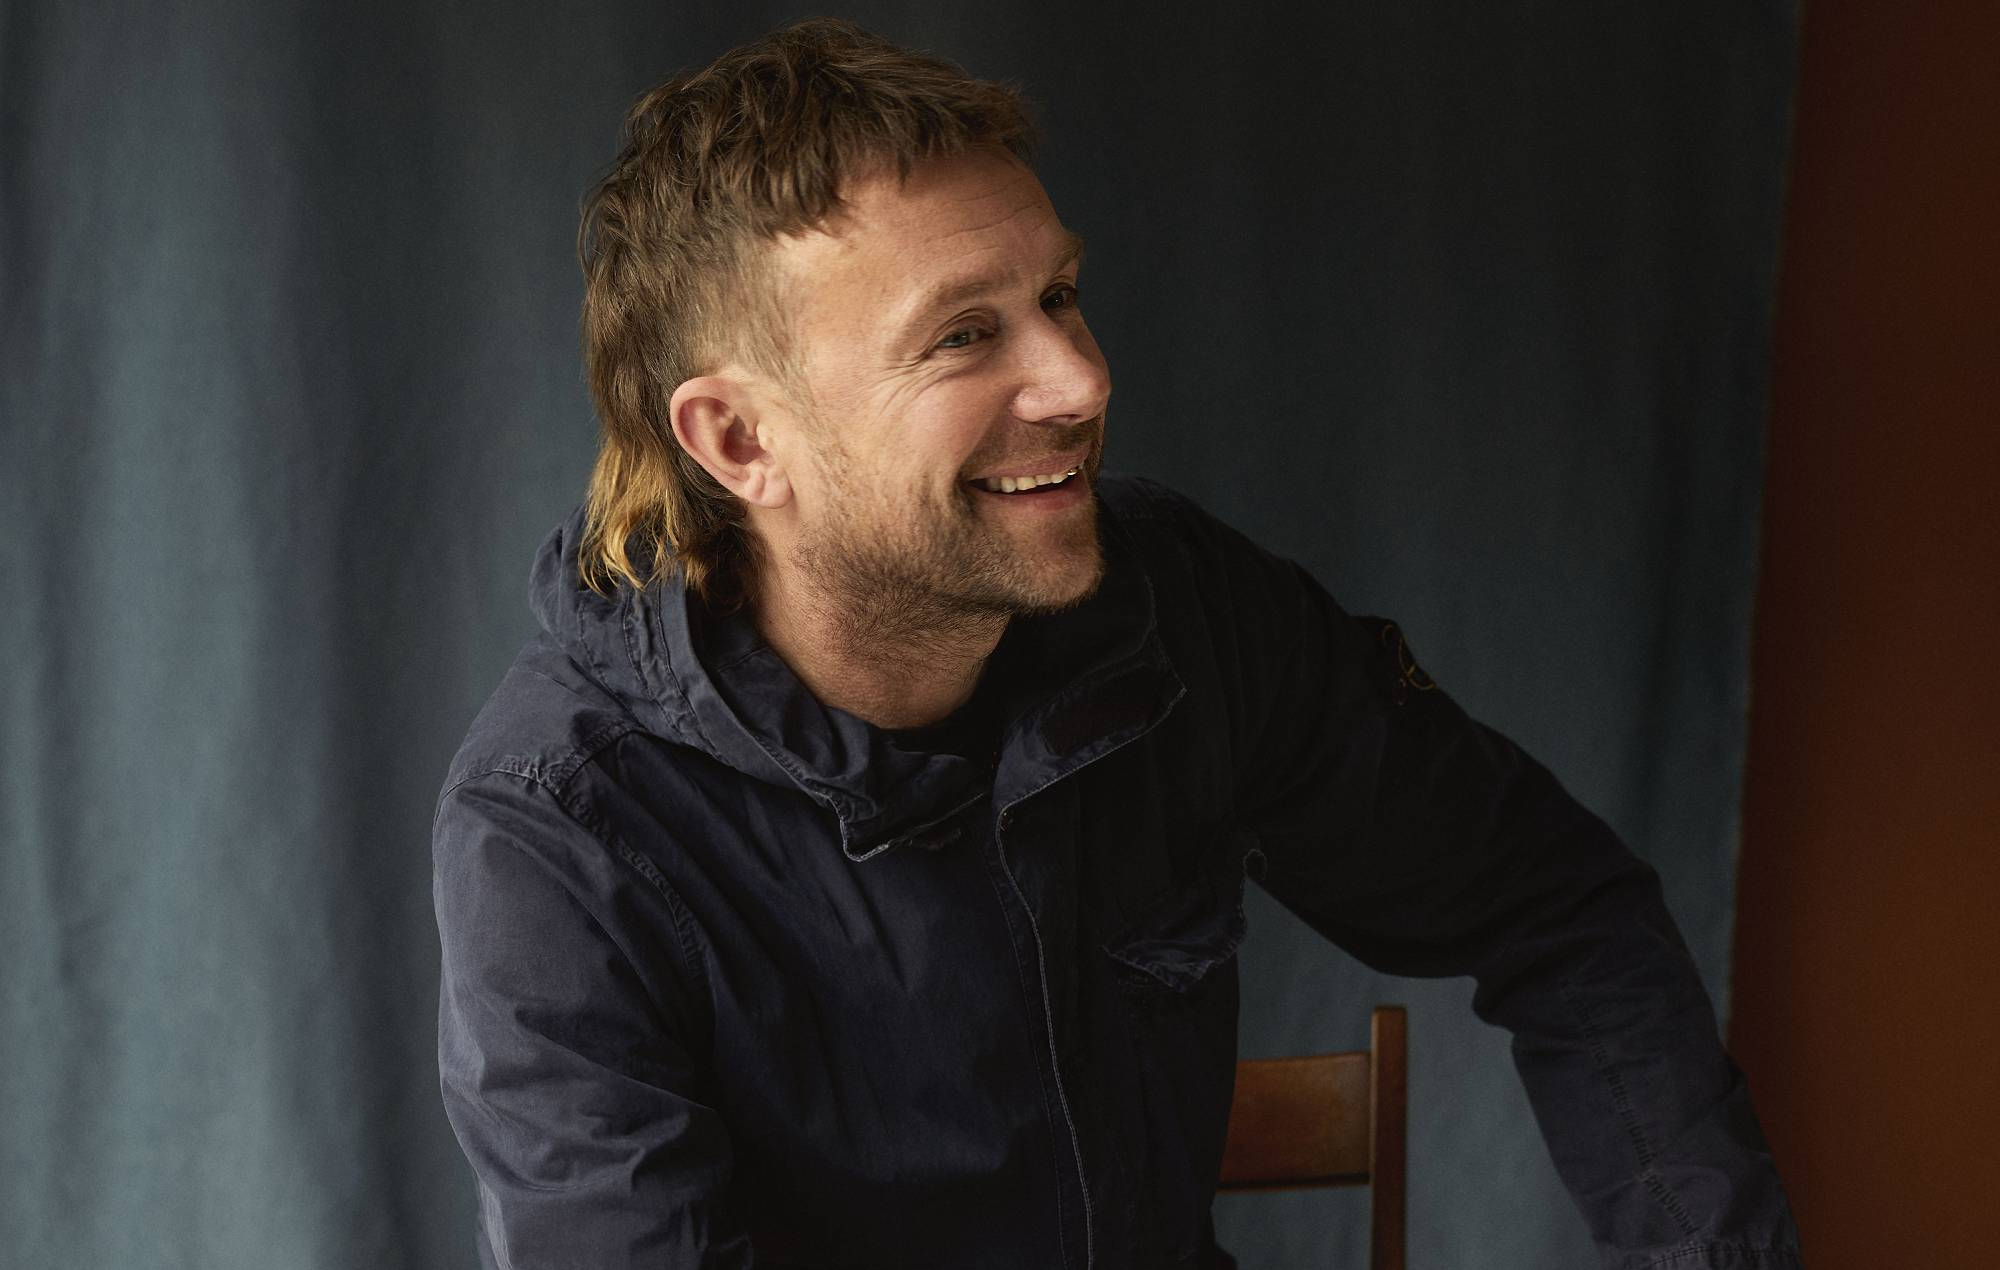 Damon Albarn returns with new solo album 'The Nearer The Fountain, More Pure The Stream Flows'. Credit: Linda Brownlee